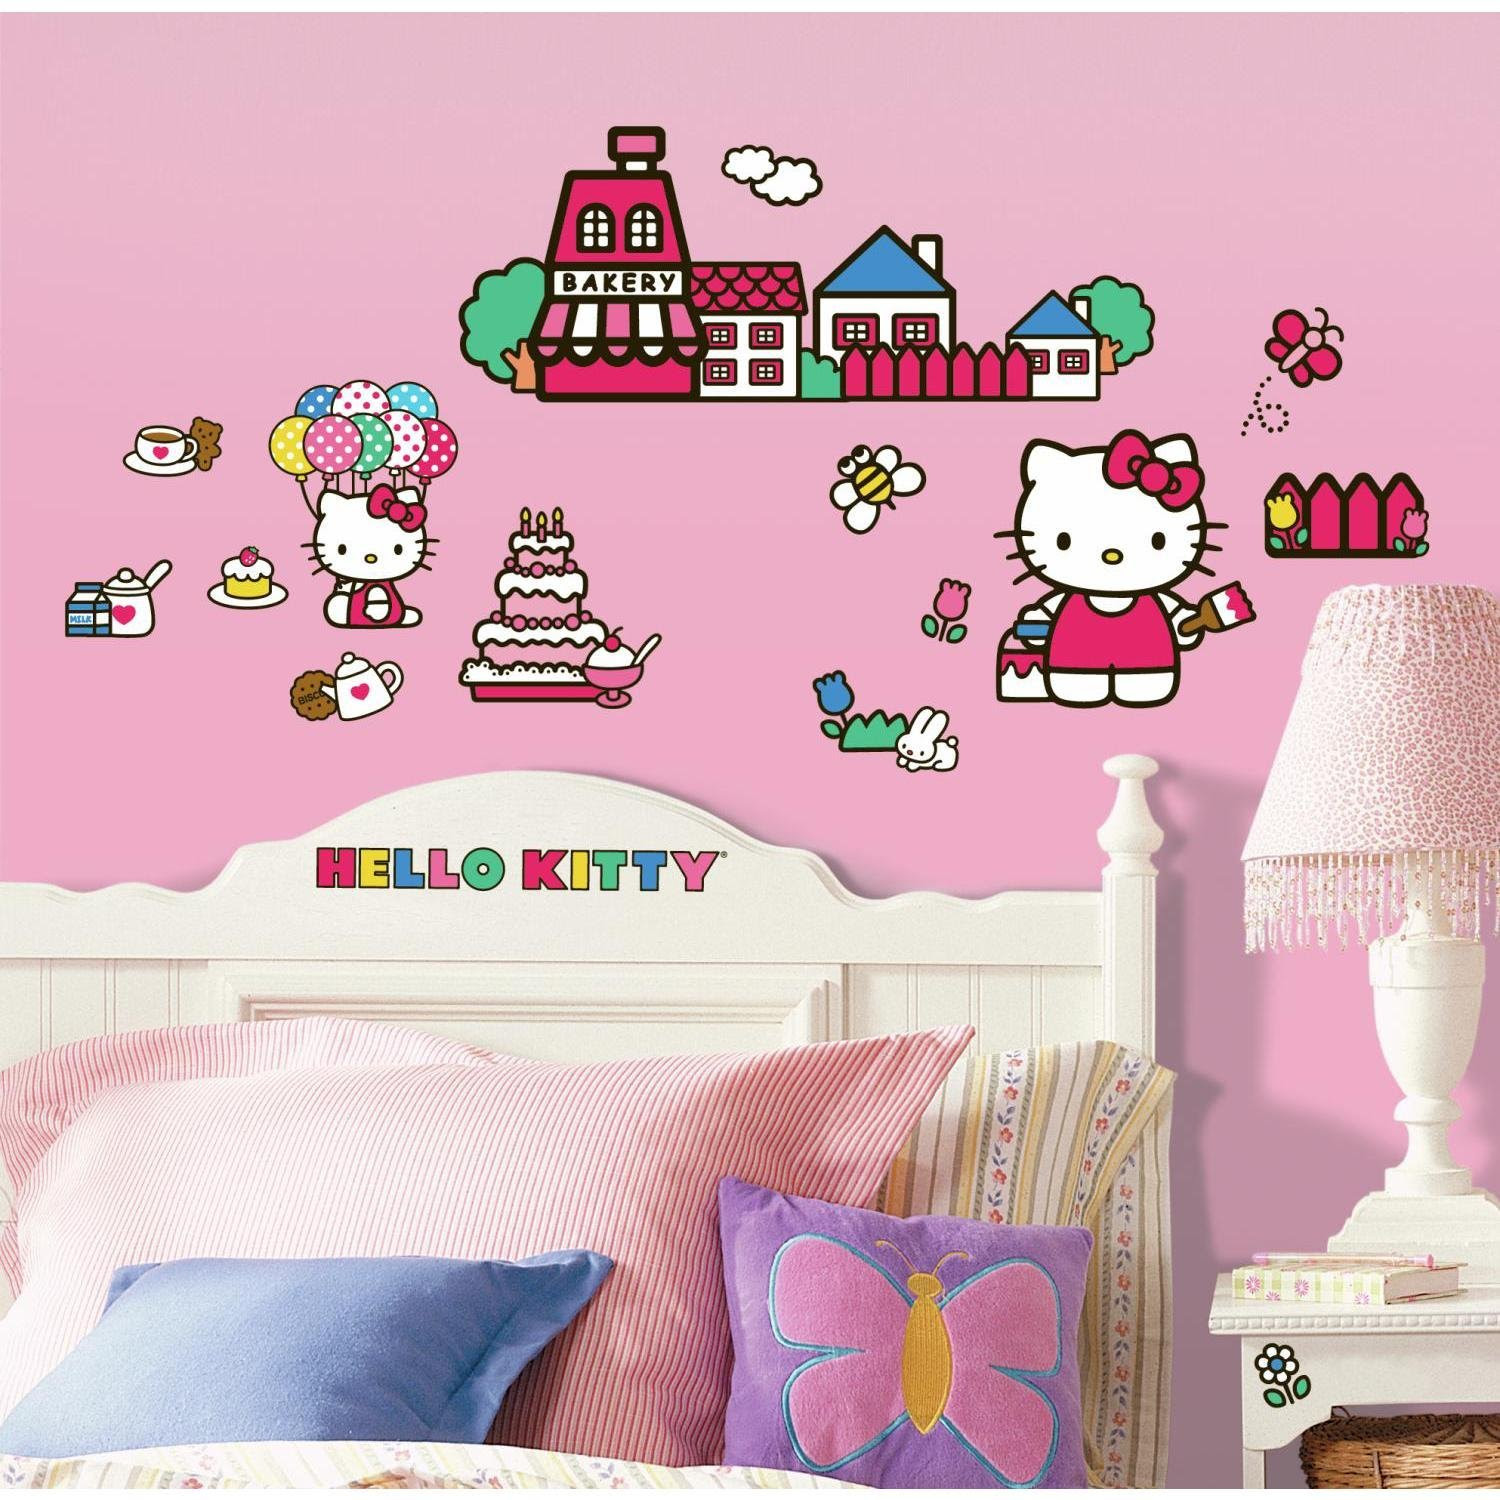 Hello Kitty | Fabulessly Frugal: A Coupon Blog sharing Amazon ...